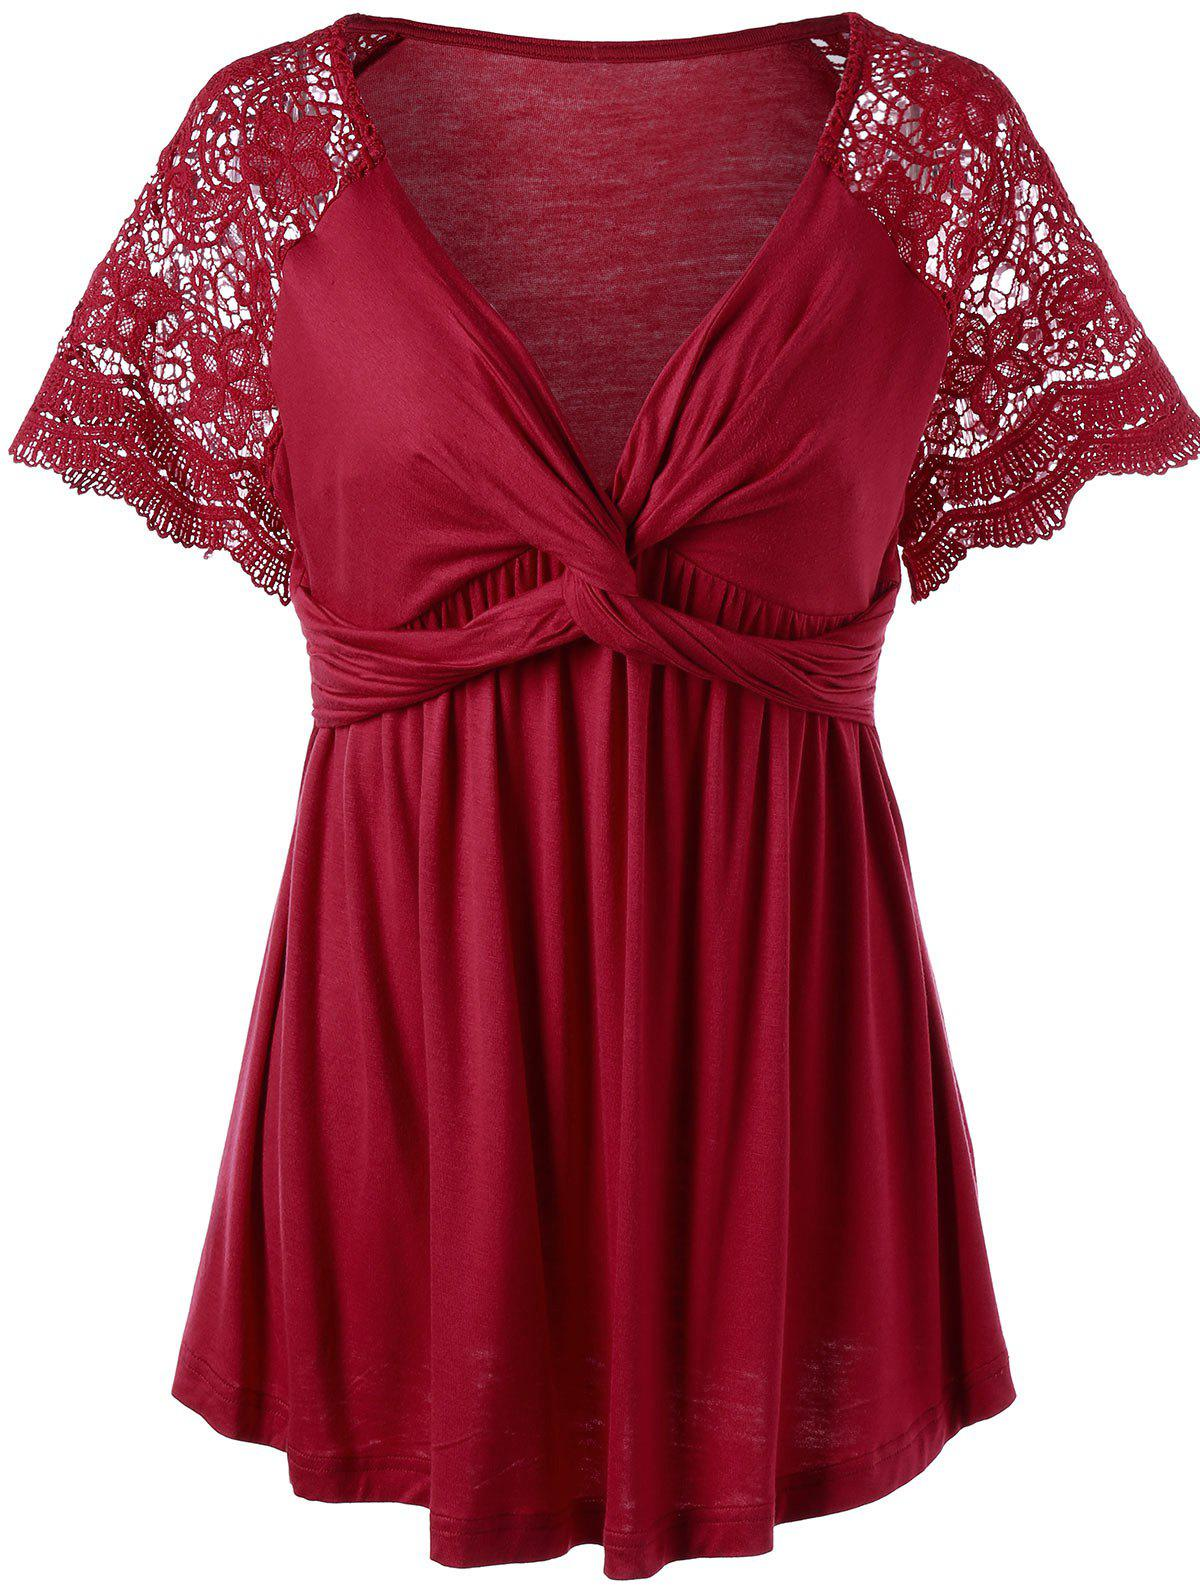 Plus Size Twist Knot Lace Panel Top 213625801